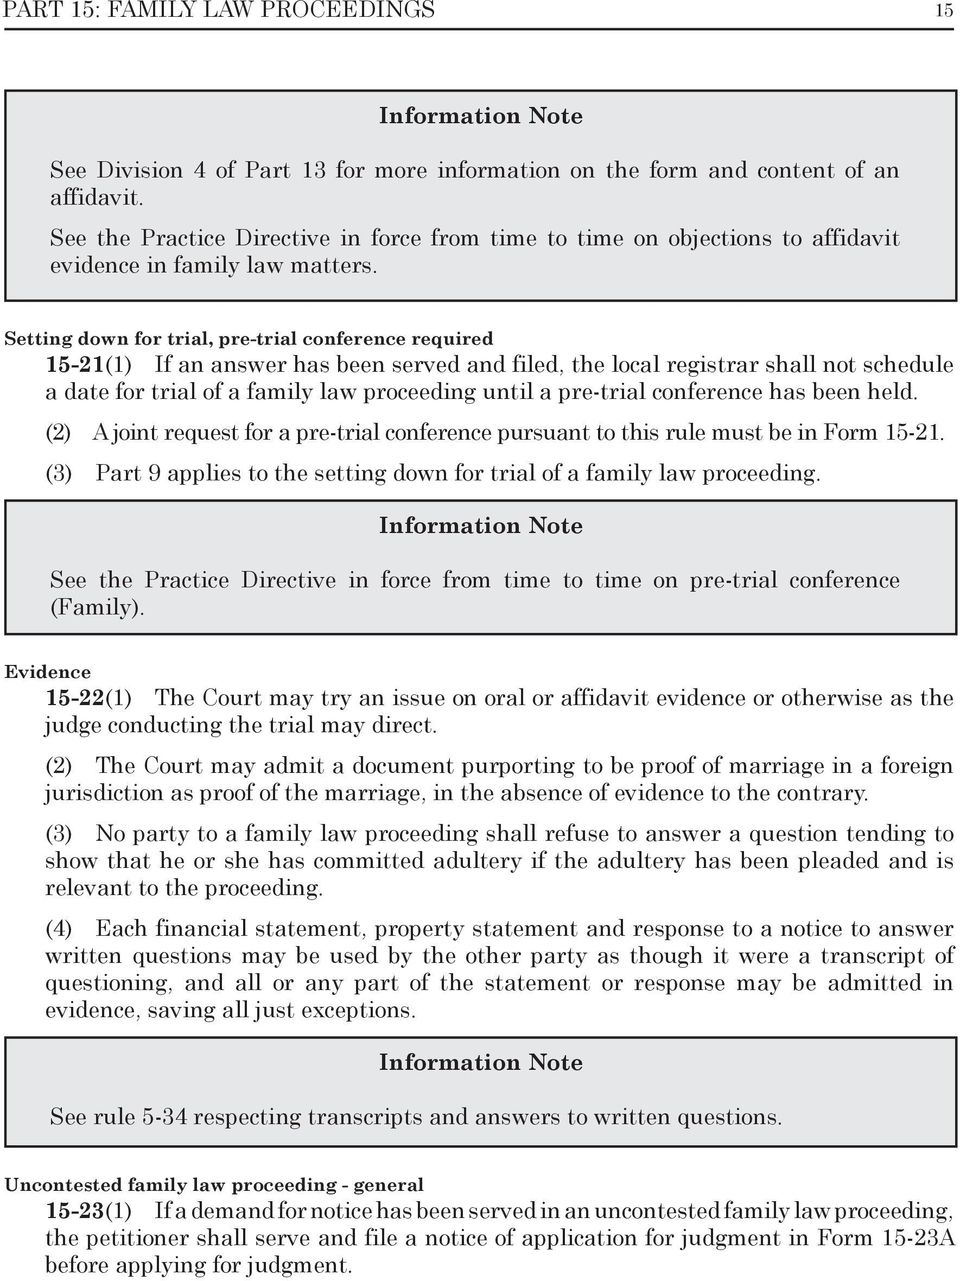 Setting down for trial, pre-trial conference required 15-21(1) If an answer has been served and filed, the local registrar shall not schedule a date for trial of a family law proceeding until a